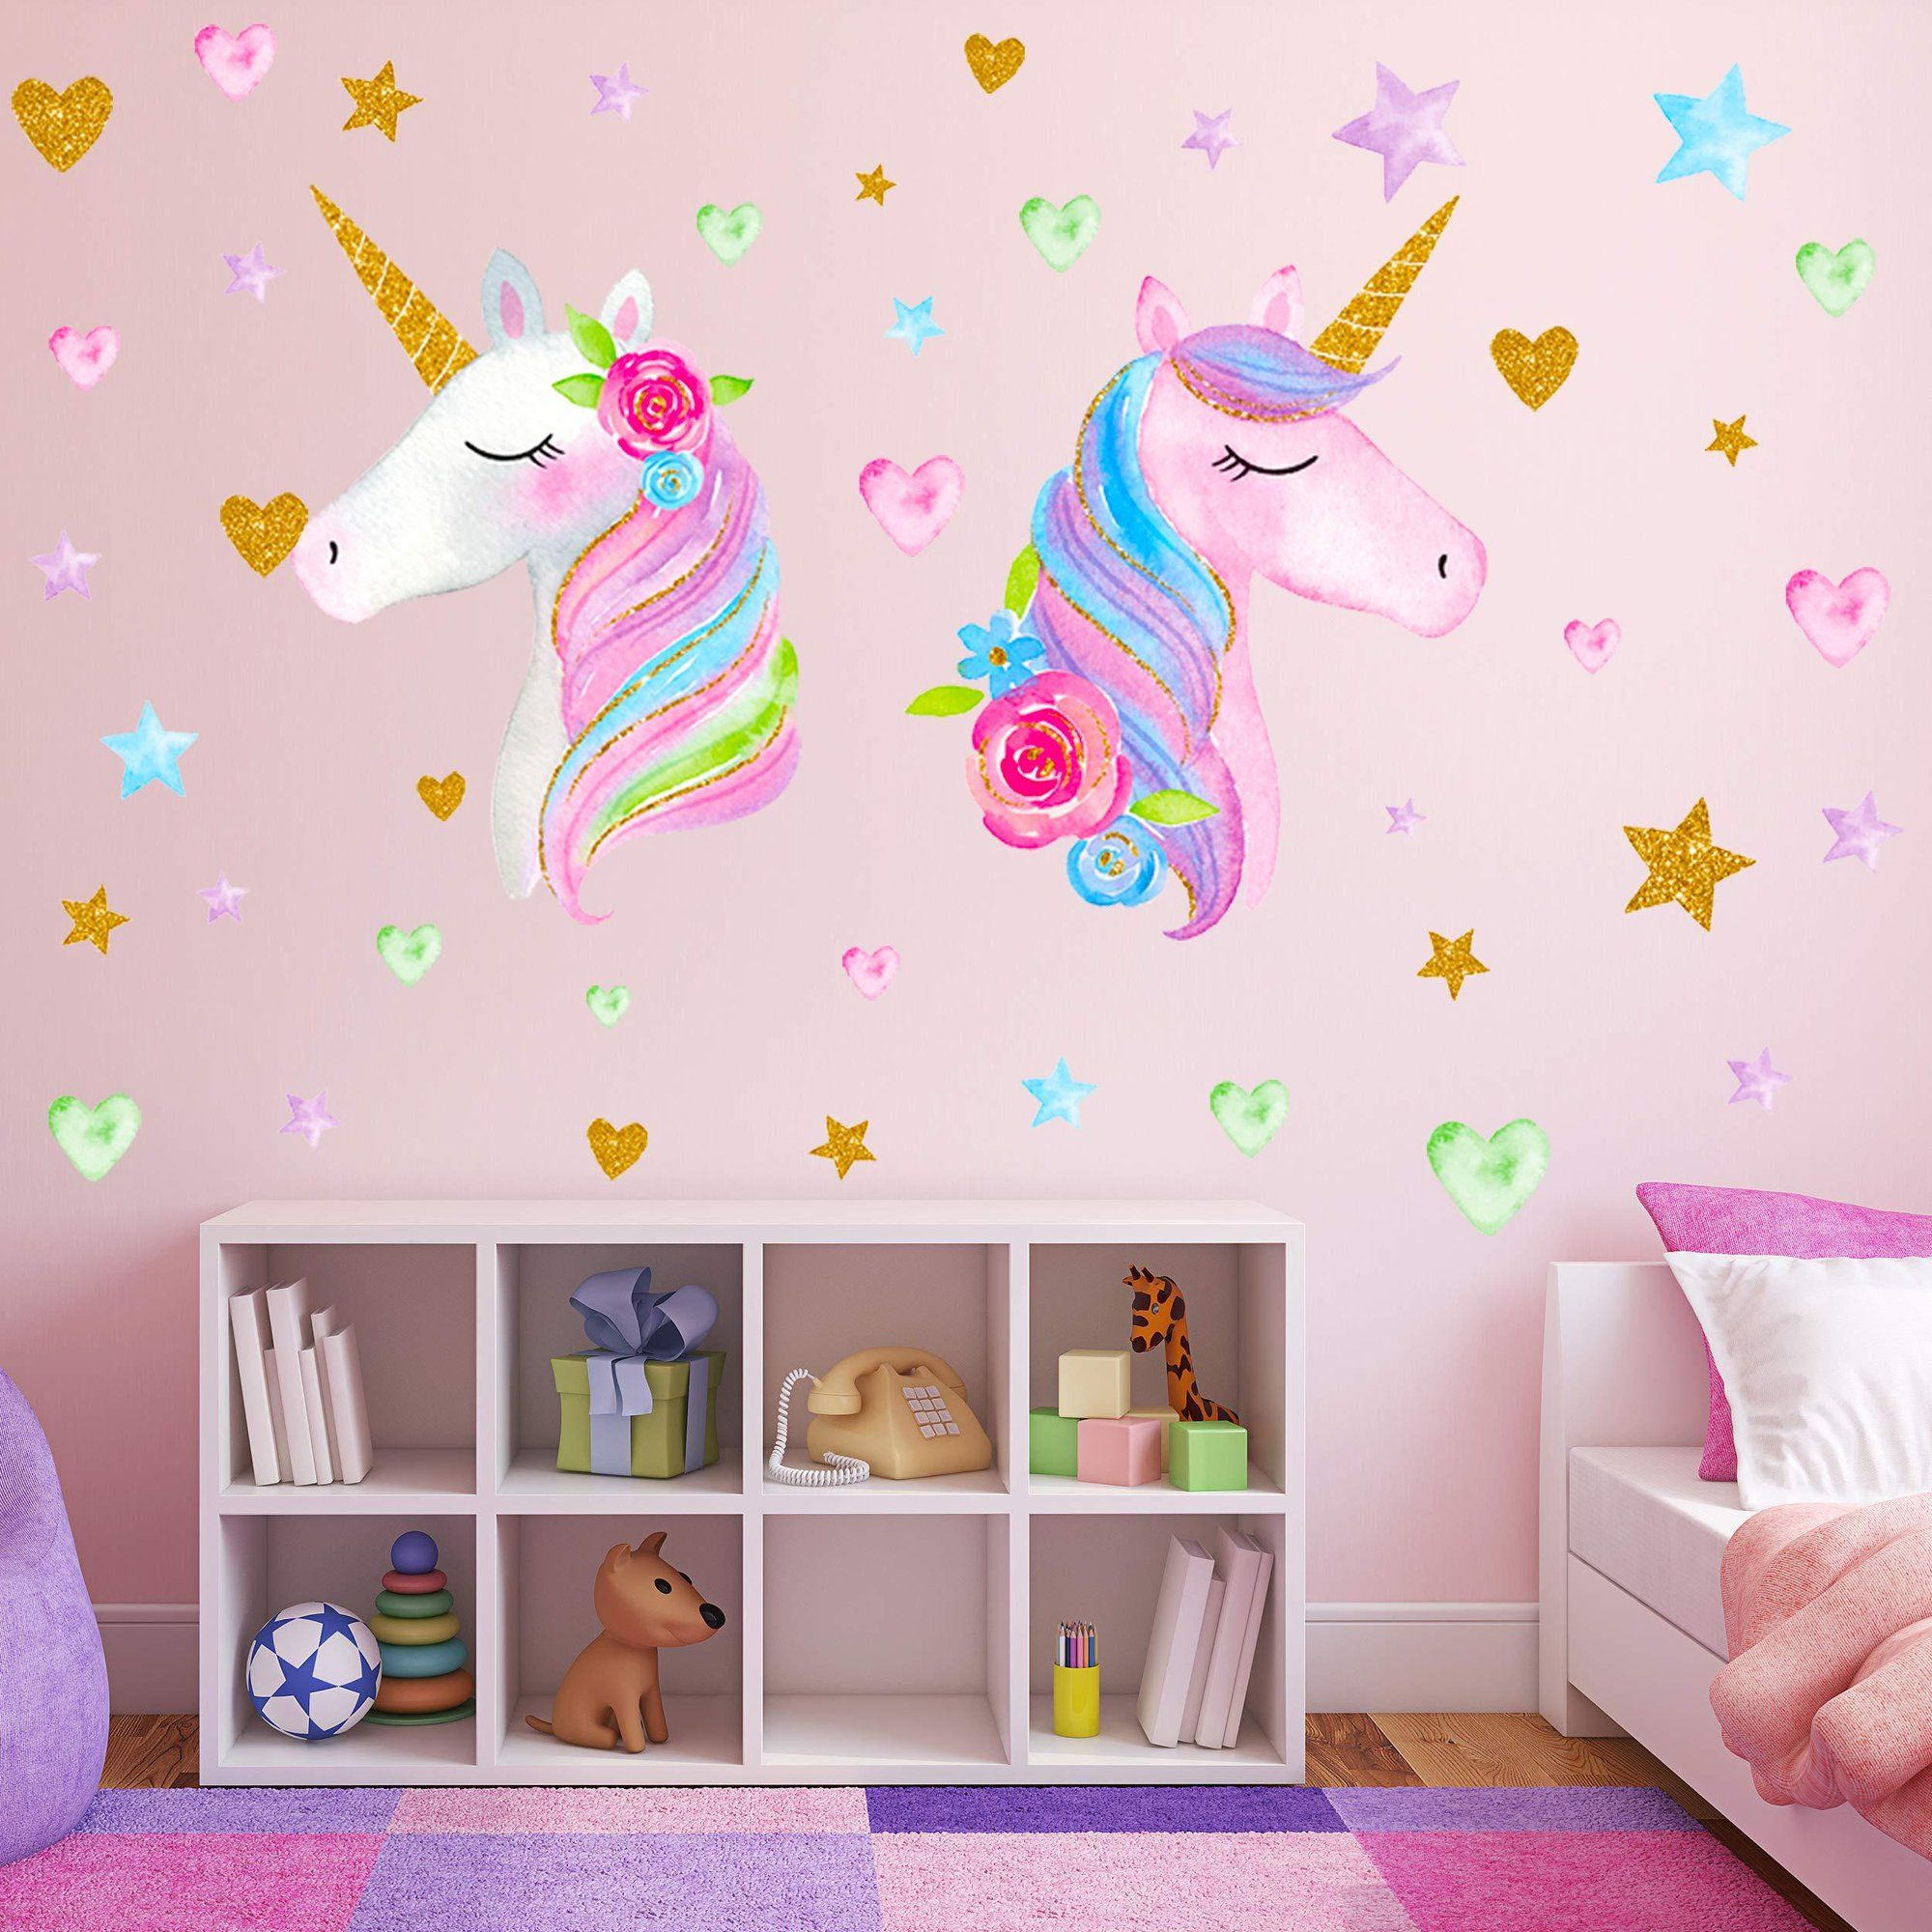 2 Sheets Large Size Unicorn Wall Decor Removable Unicorn Wall Decals Stickers Decor For Gilrs Kids Bedroom Nursery Birthday Party Favor Neasyth Store 9 99 2 In 2021 Baby Wall Stickers Kids Bedroom Unicorn bedroom wall decor